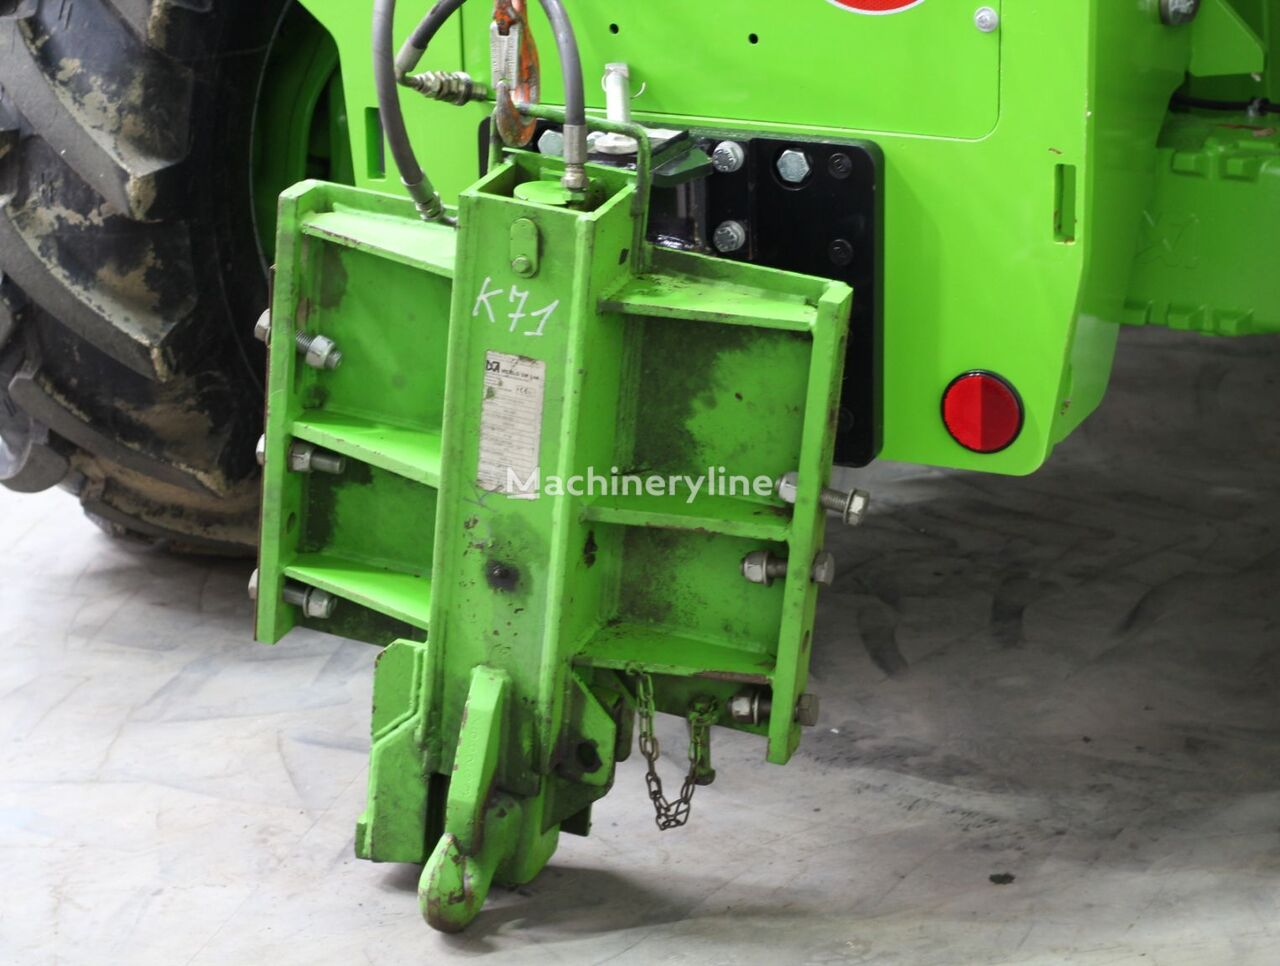 MERPUTHDA 26-6 tow bar for telehandler